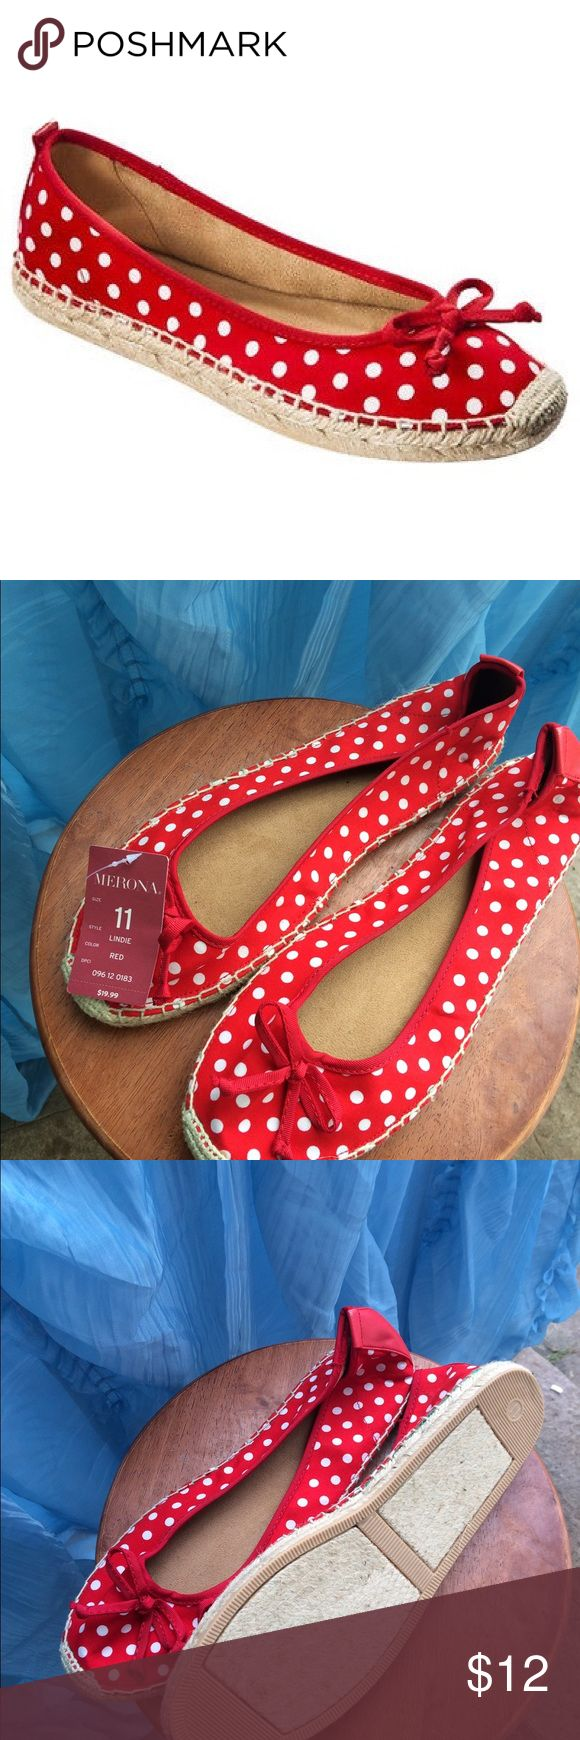 (NEW) Merona Lindie Espadrille Shoe Red and white polka dot Lindie Espadrille shoes. (No box) Merona Shoes Espadrilles